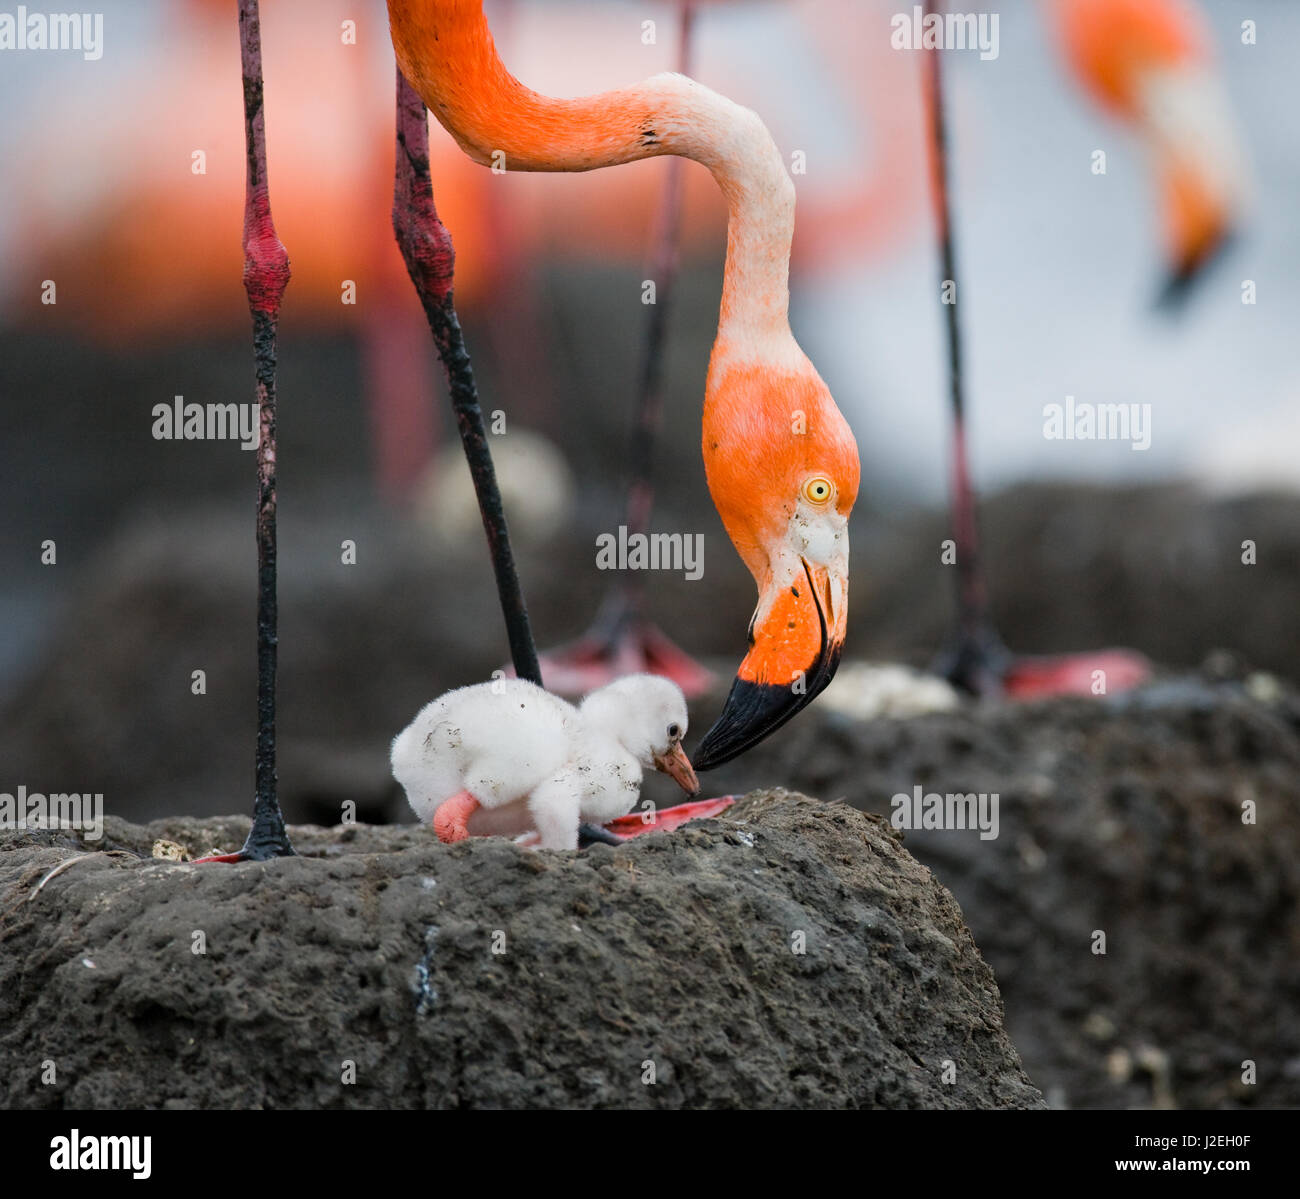 Caribbean flamingo on a nest with chicks. Cuba. An excellent illustration. - Stock Image